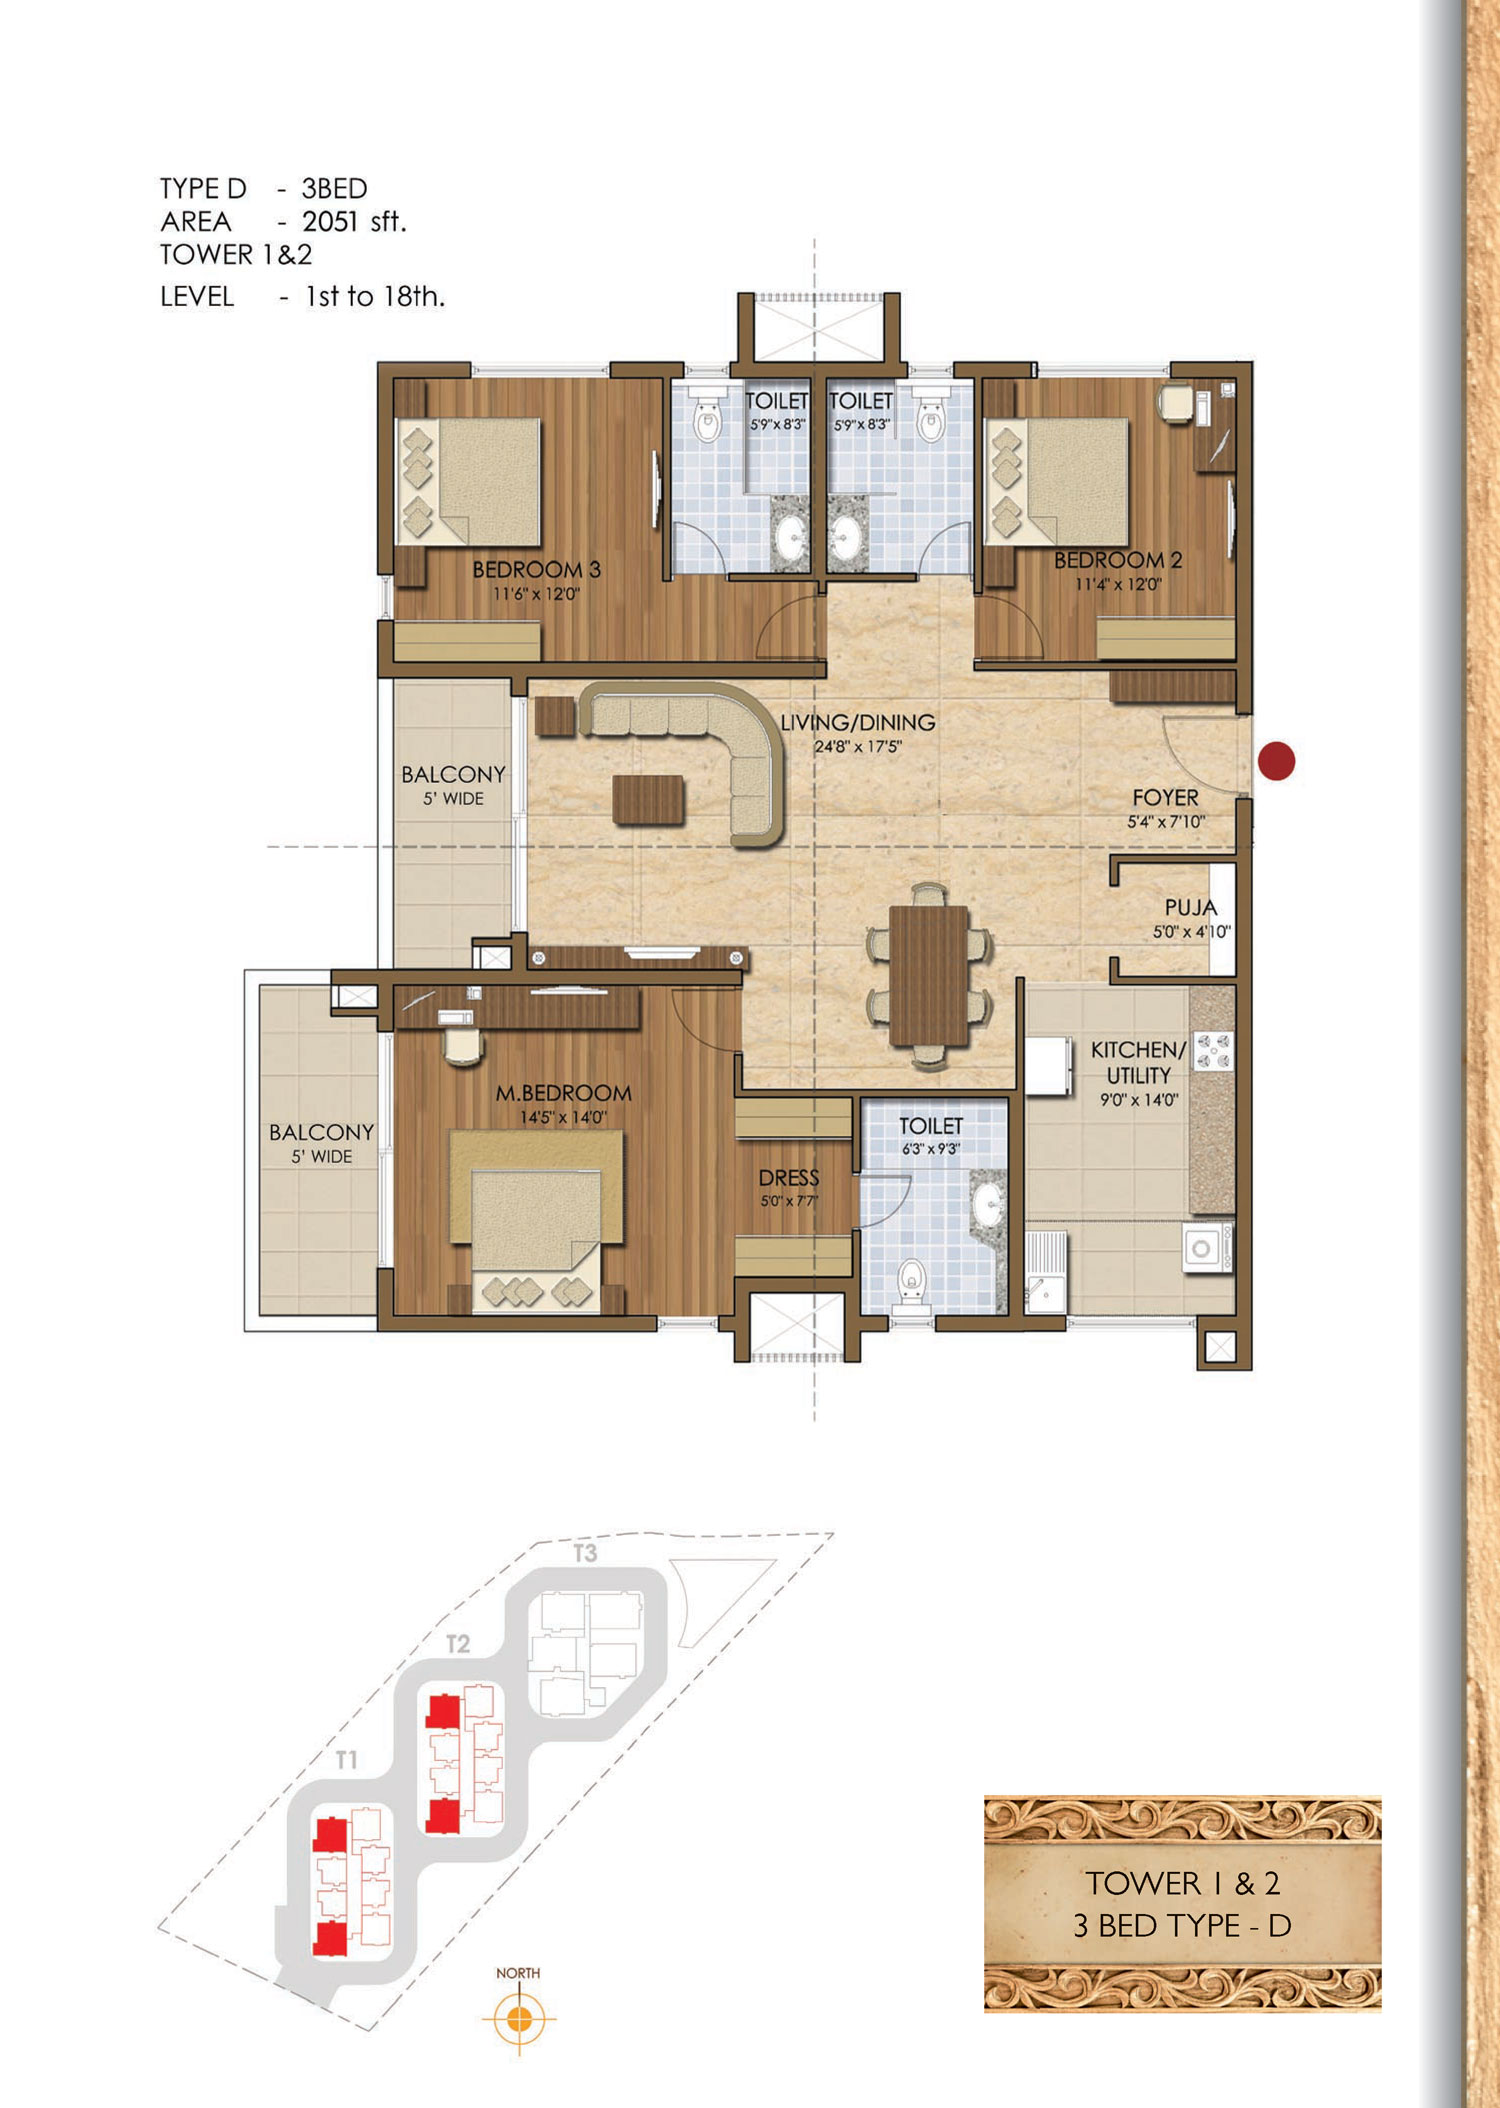 Type D - 3 Bed - 2051 Sq Ft